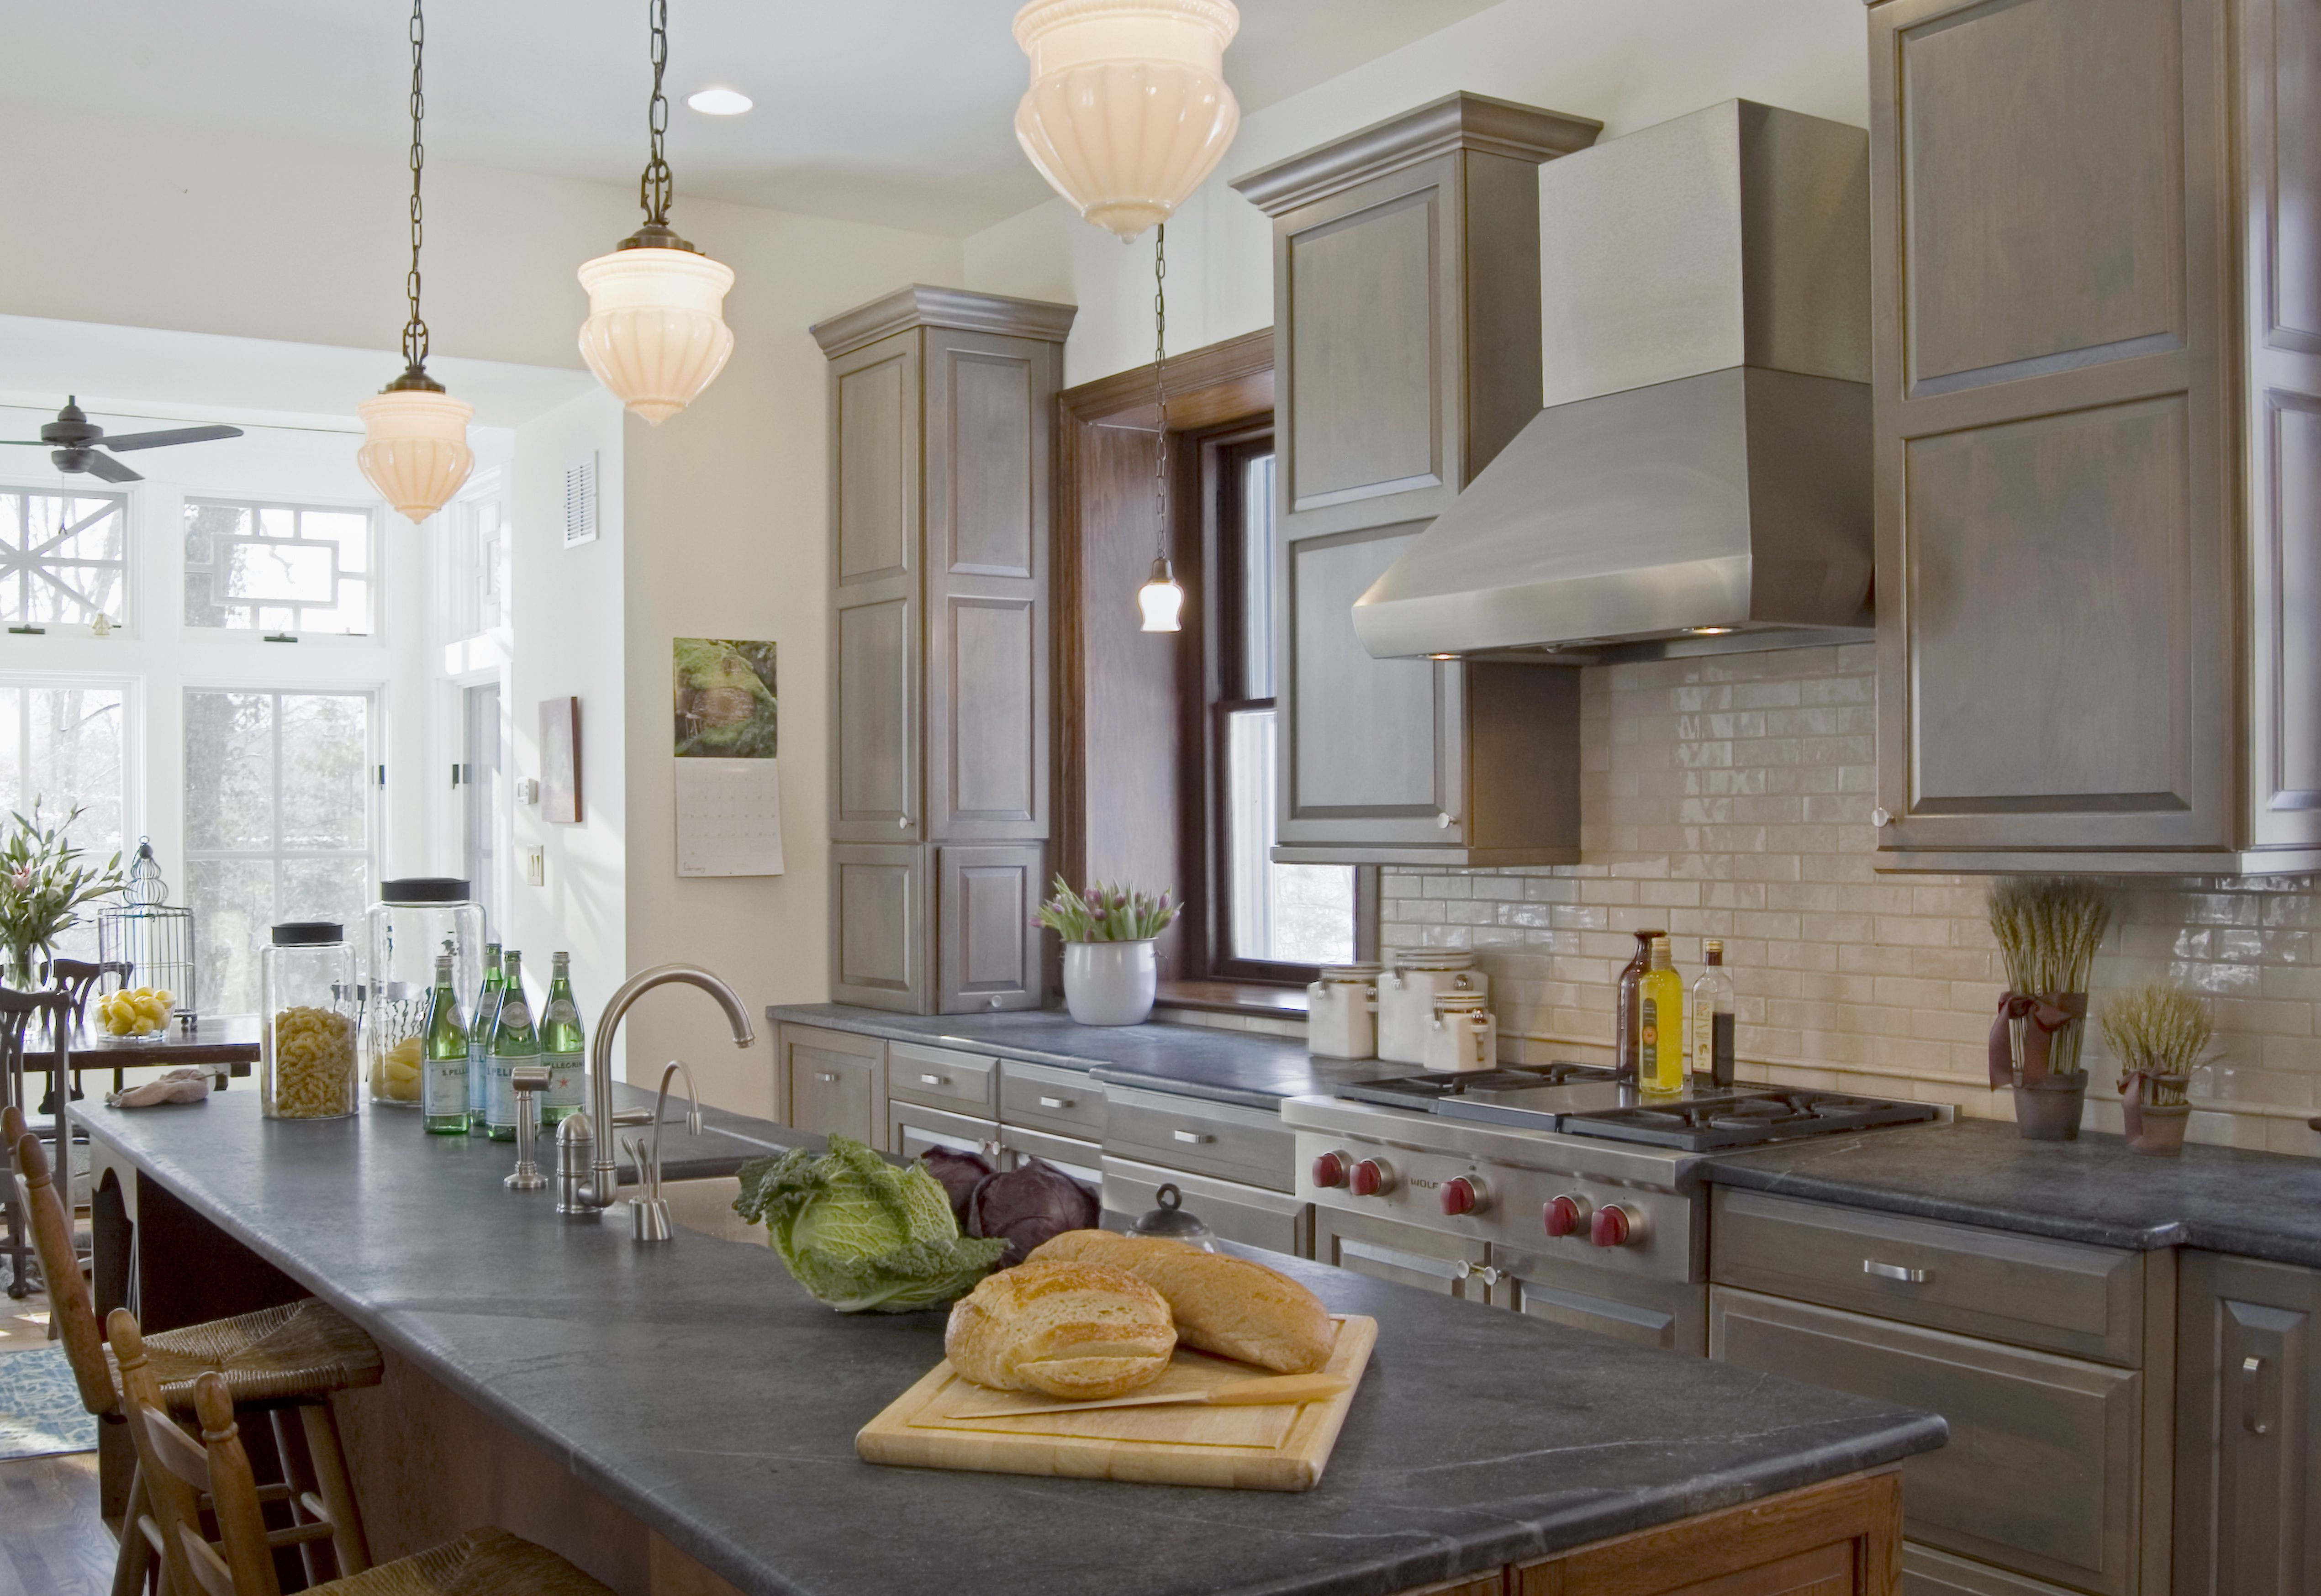 Etonnant My Perfect Kitchen Finish Wise  Gray Cabinets, Gray Soapstone Countertops,  White Subway Tile Backsplash, Red Accents. ADORE